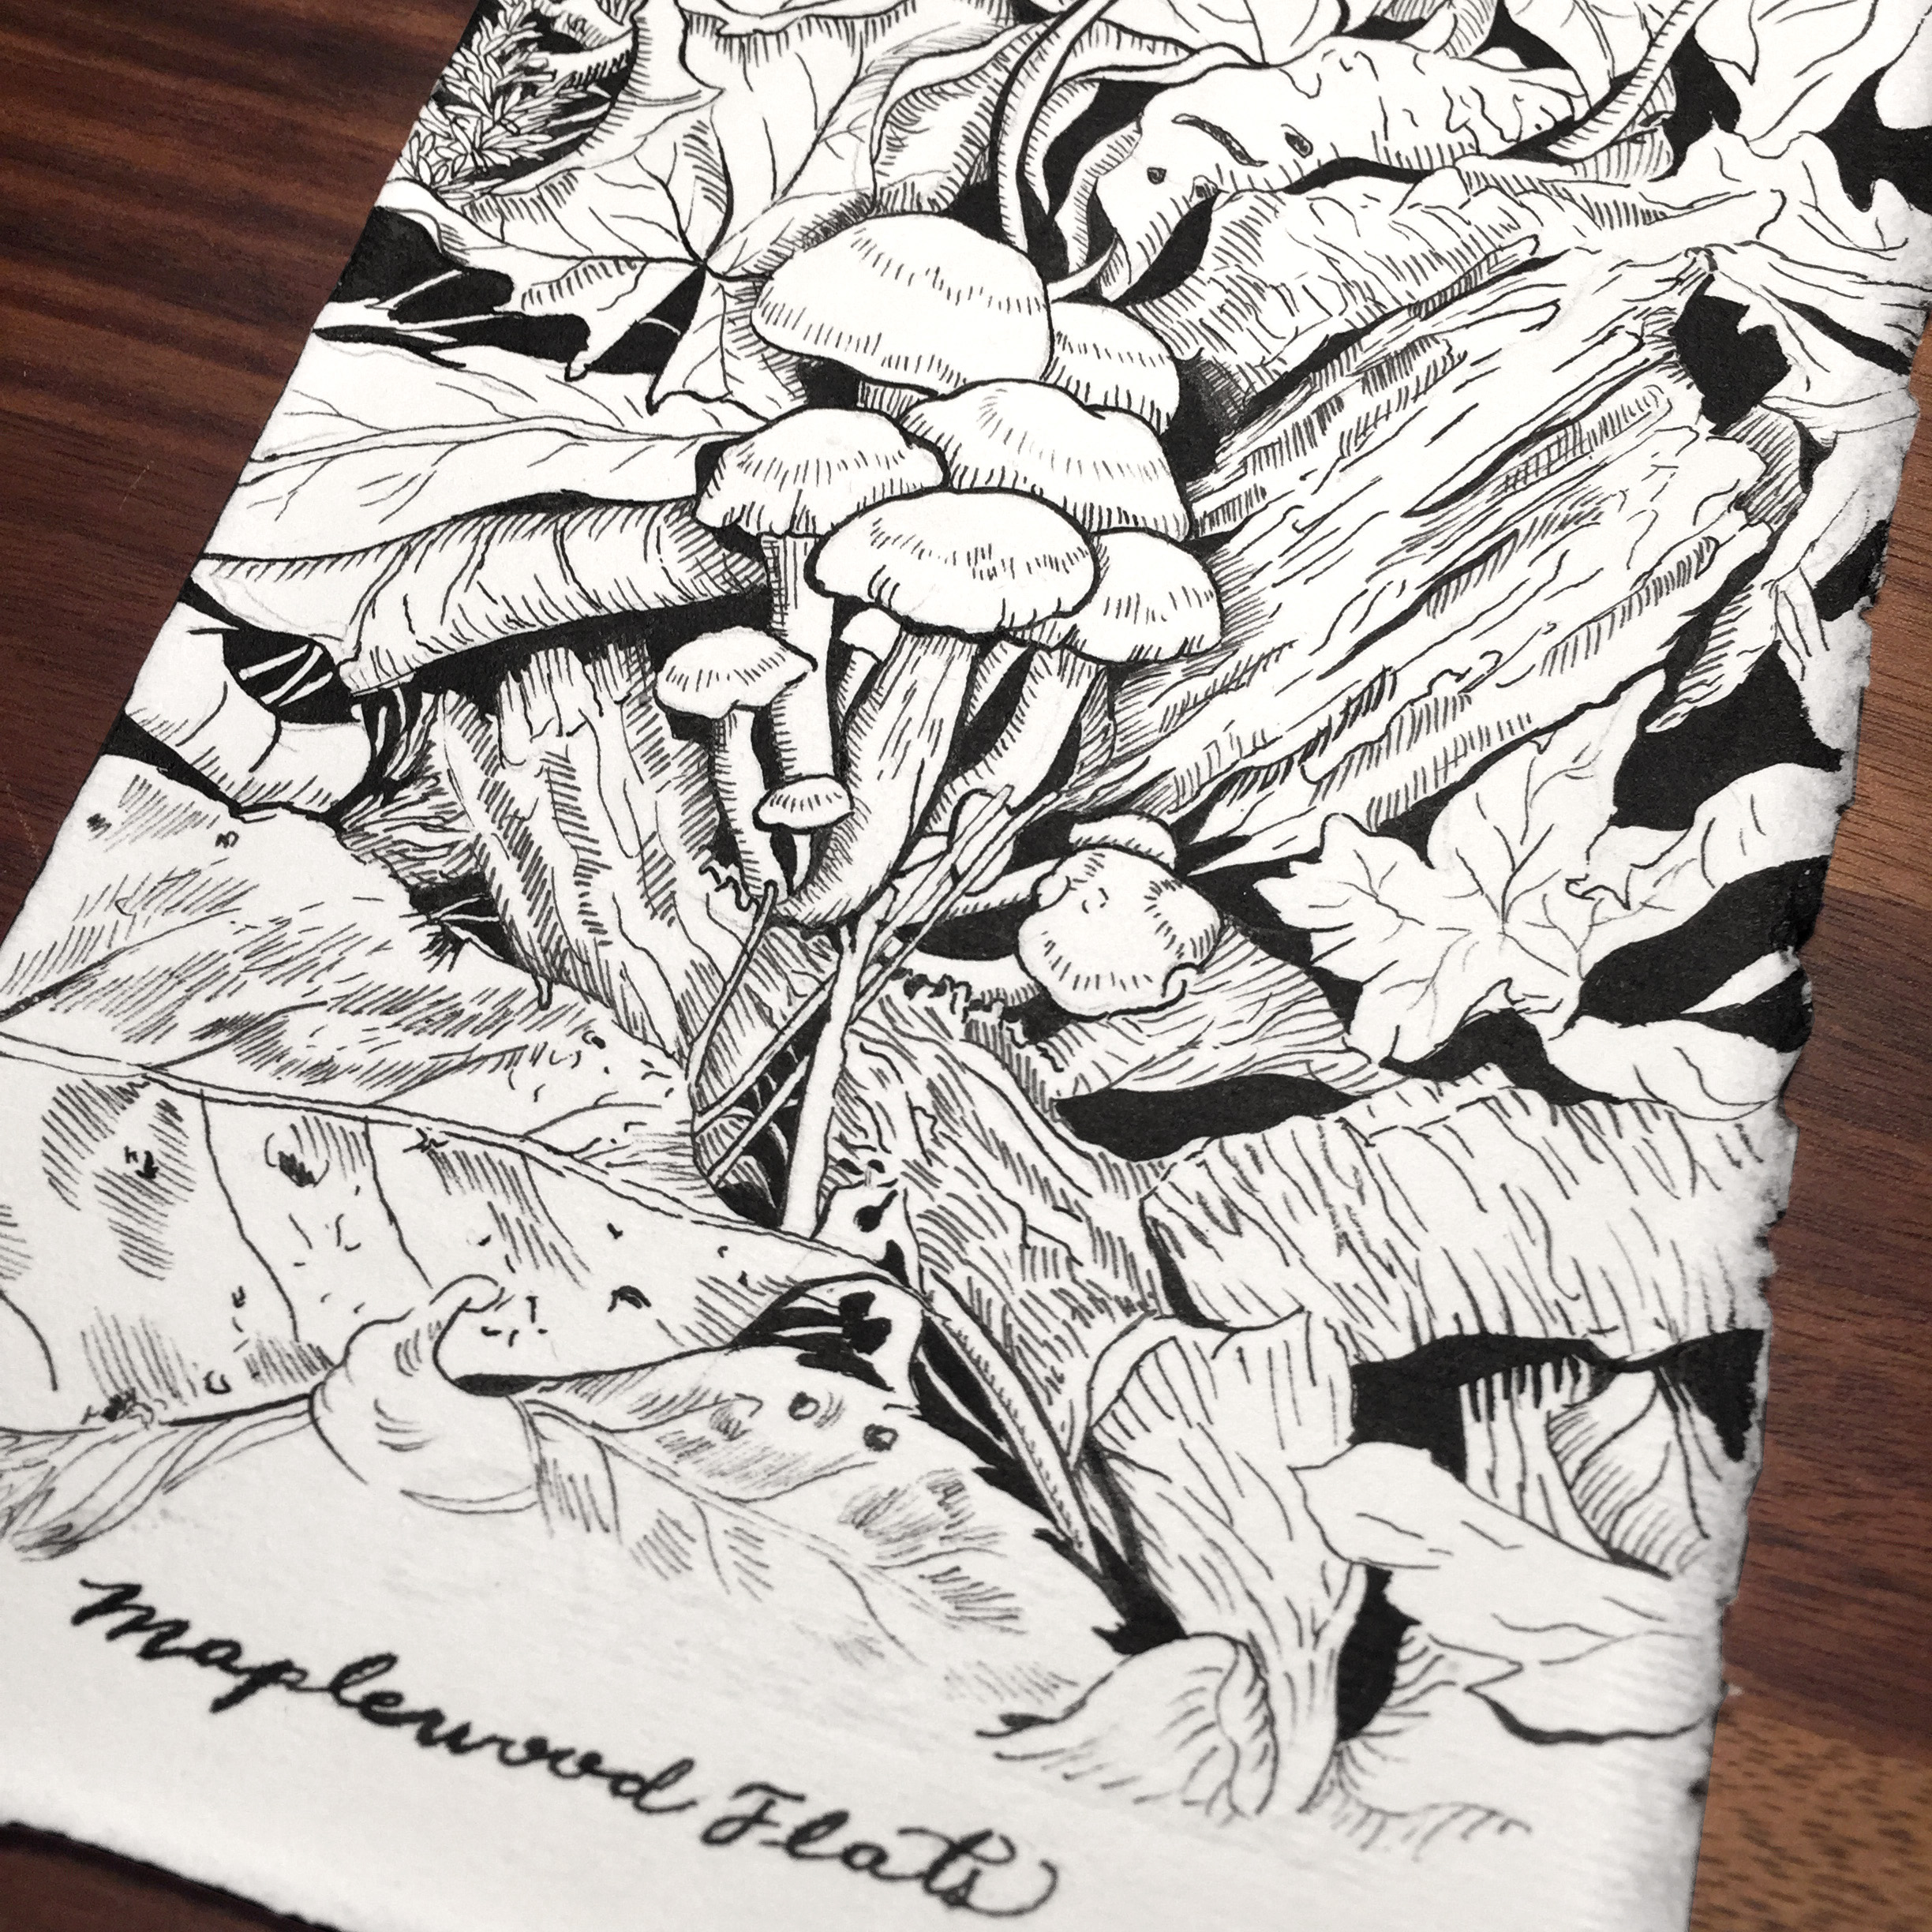 Learn to draw and paint with Ink, using the hatching and cross-hatching technique.